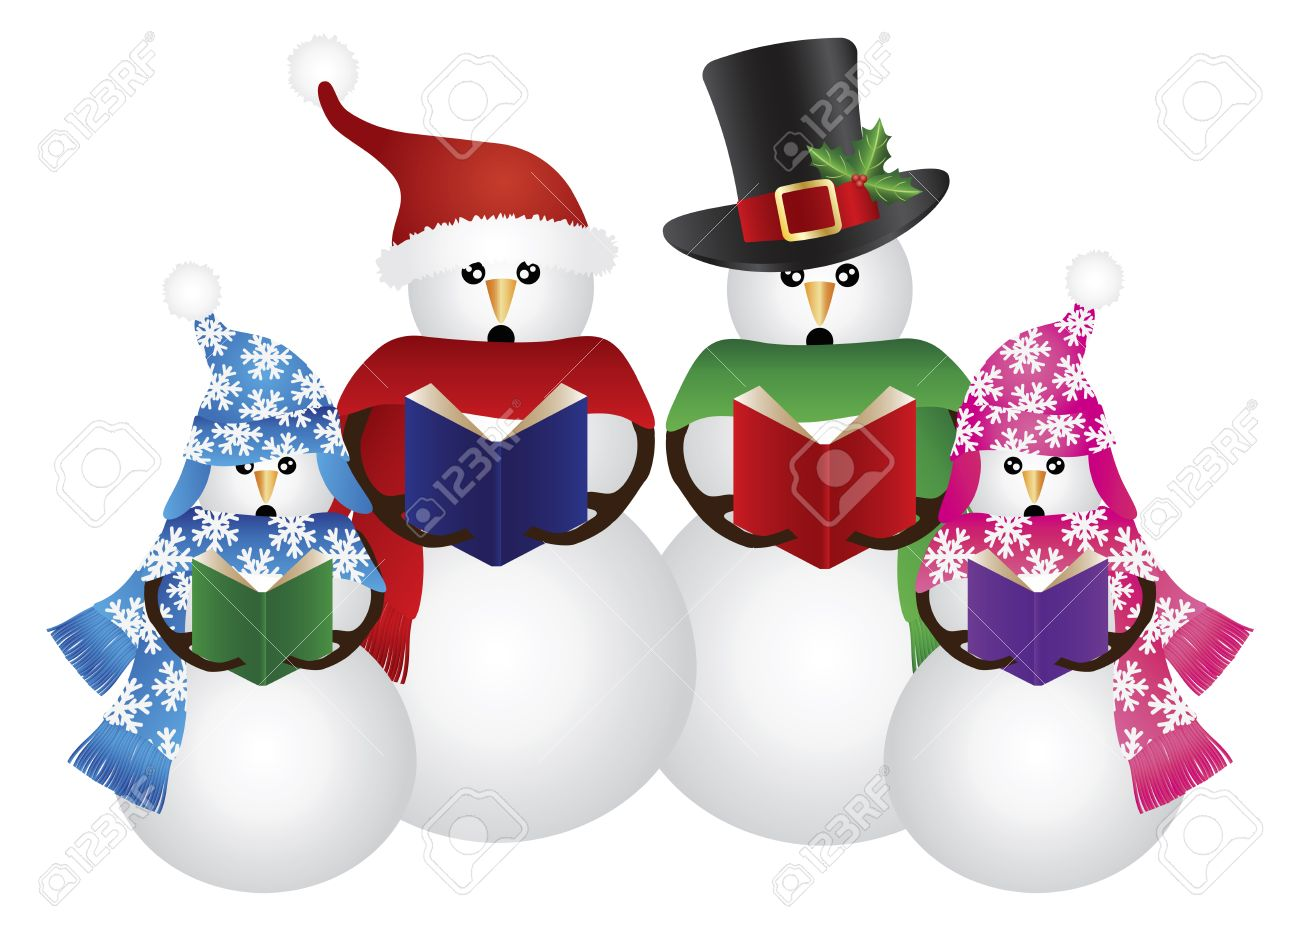 Snowman Family Christmas Carolers With Hat And Scarf Isolated On White Background Illustration Stock Vector